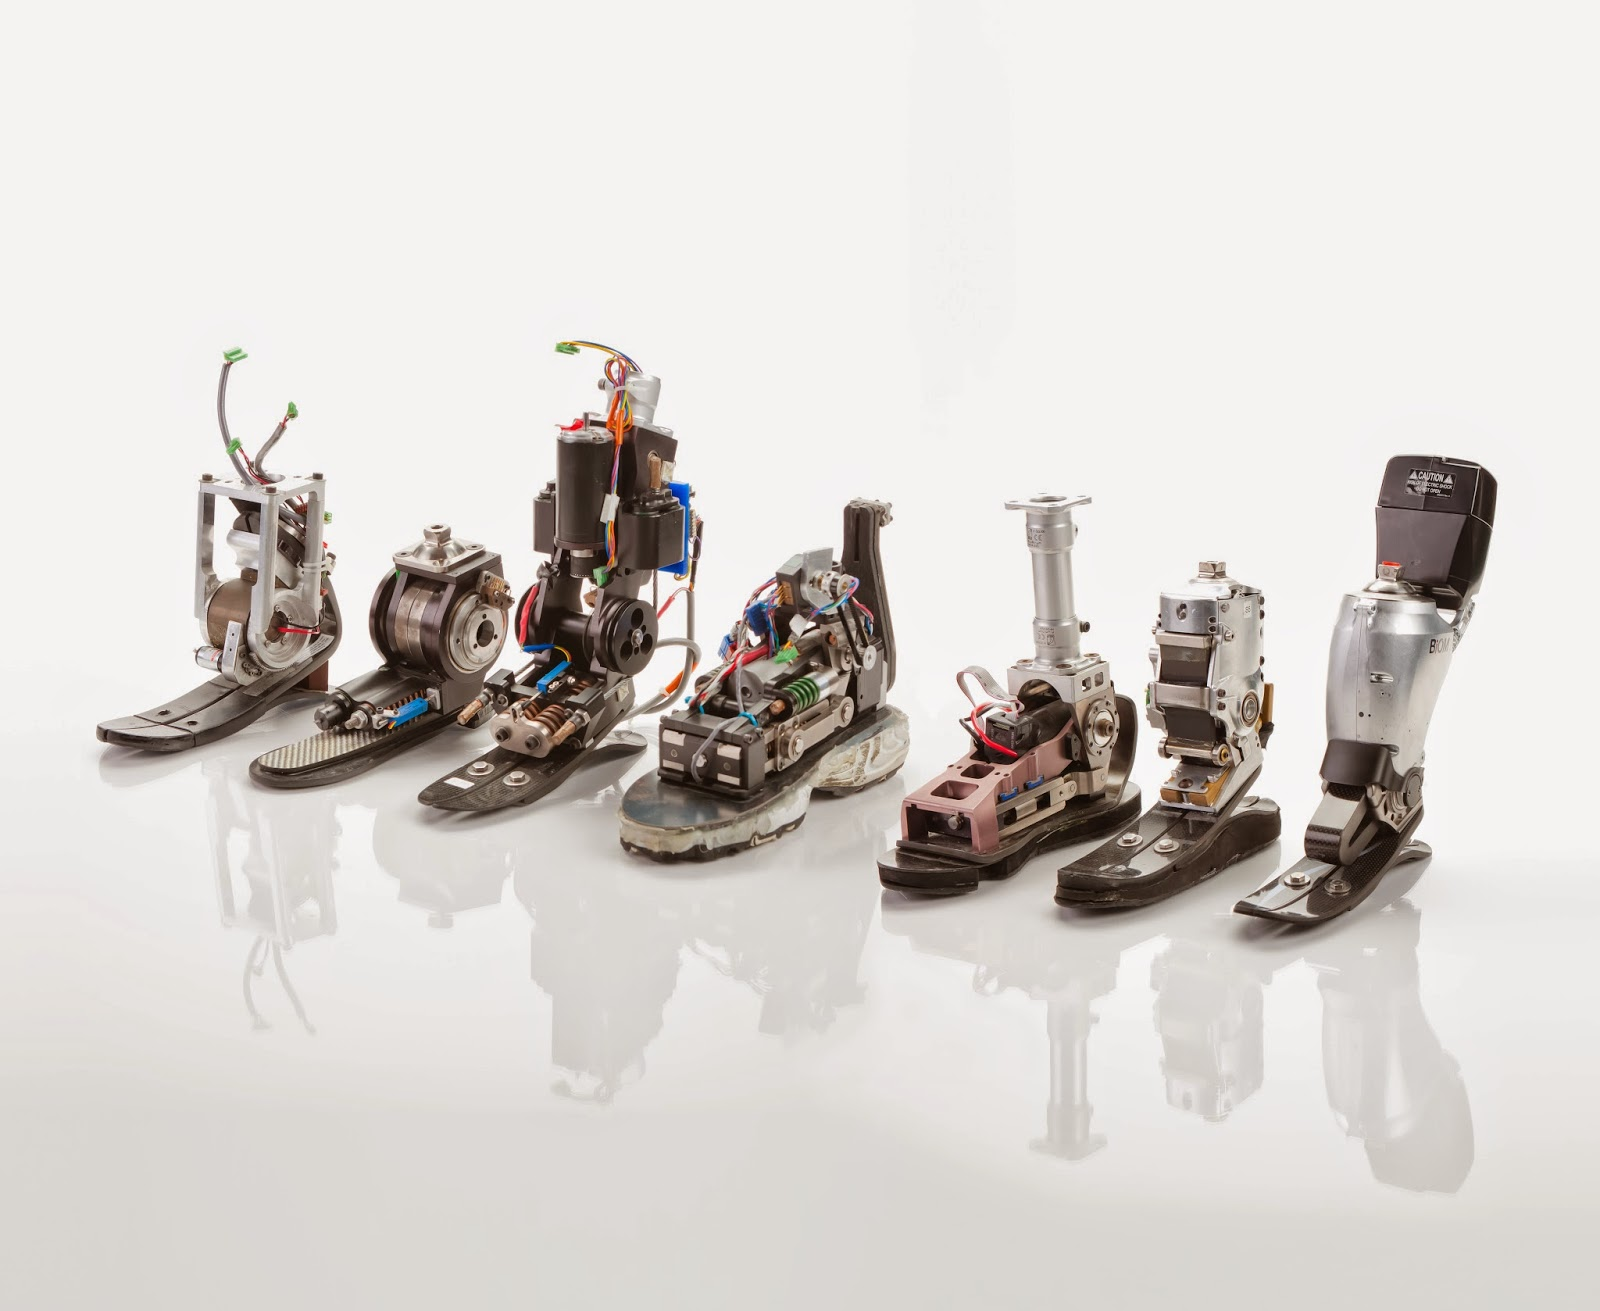 Robot Control Theory Applied To Improve Prosthetic Legs